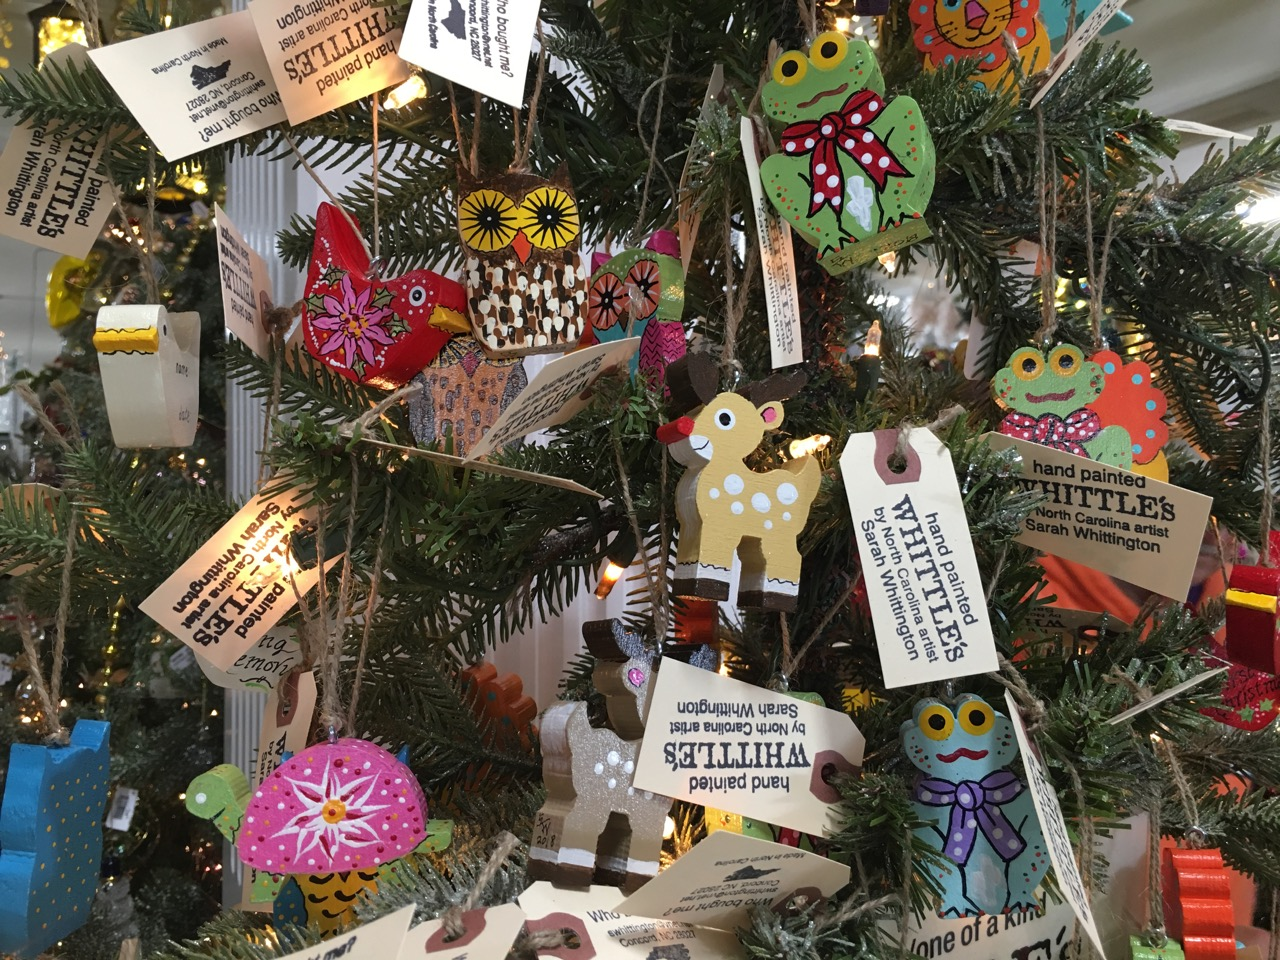 Hand-made wooden ornaments from local artist Sarah Whittington